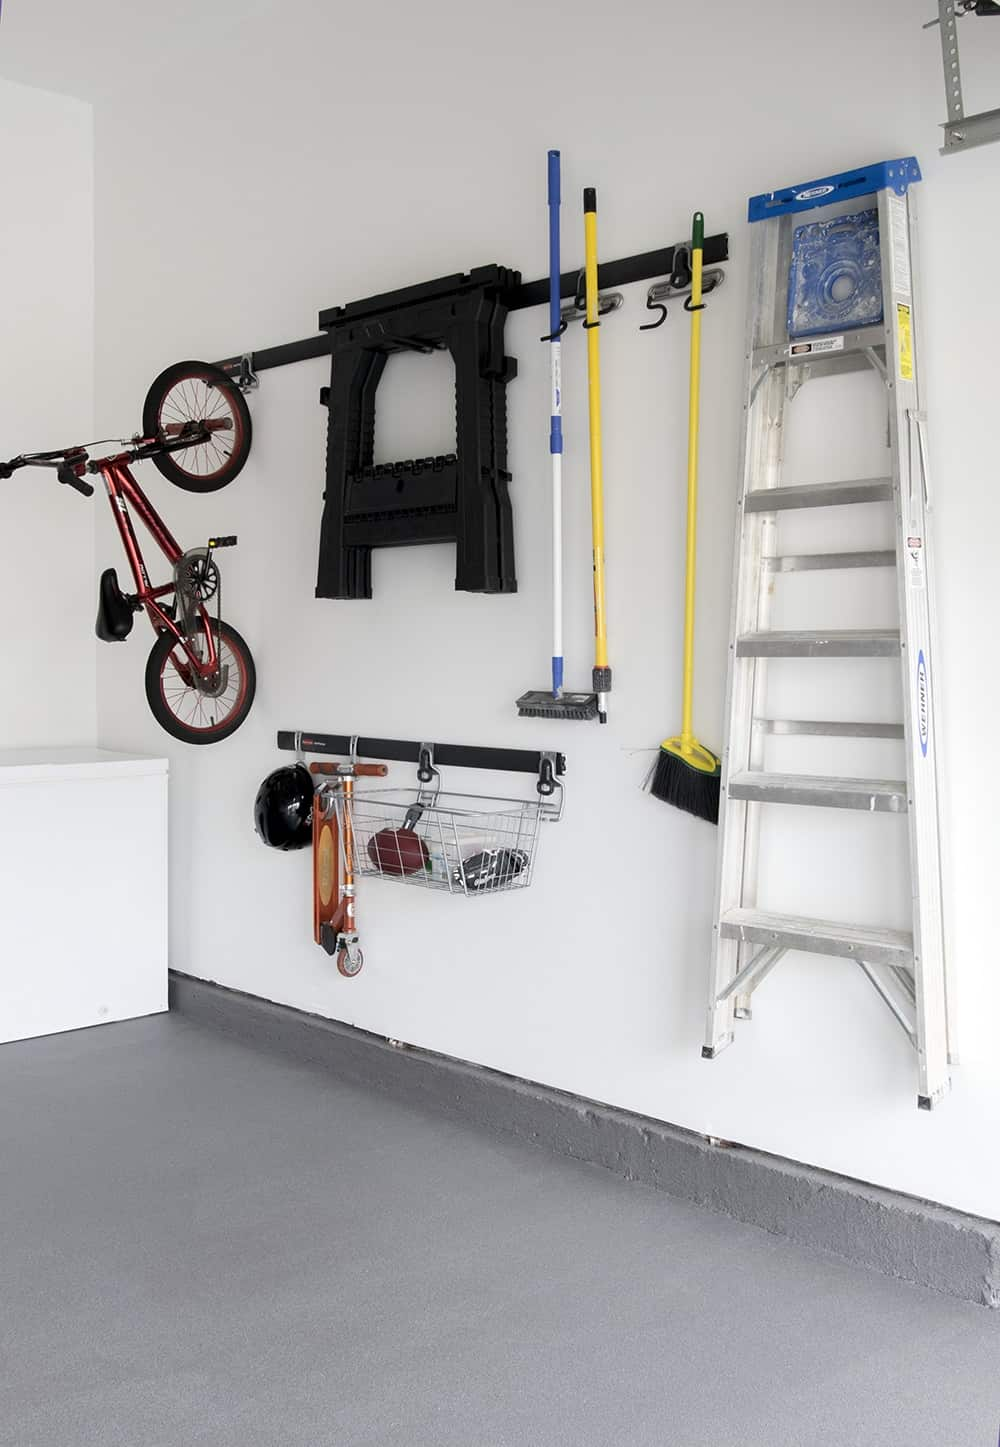 Non- slip floor in residential garage below organized hanging wall with ladders, toys, and cleaning supplies.